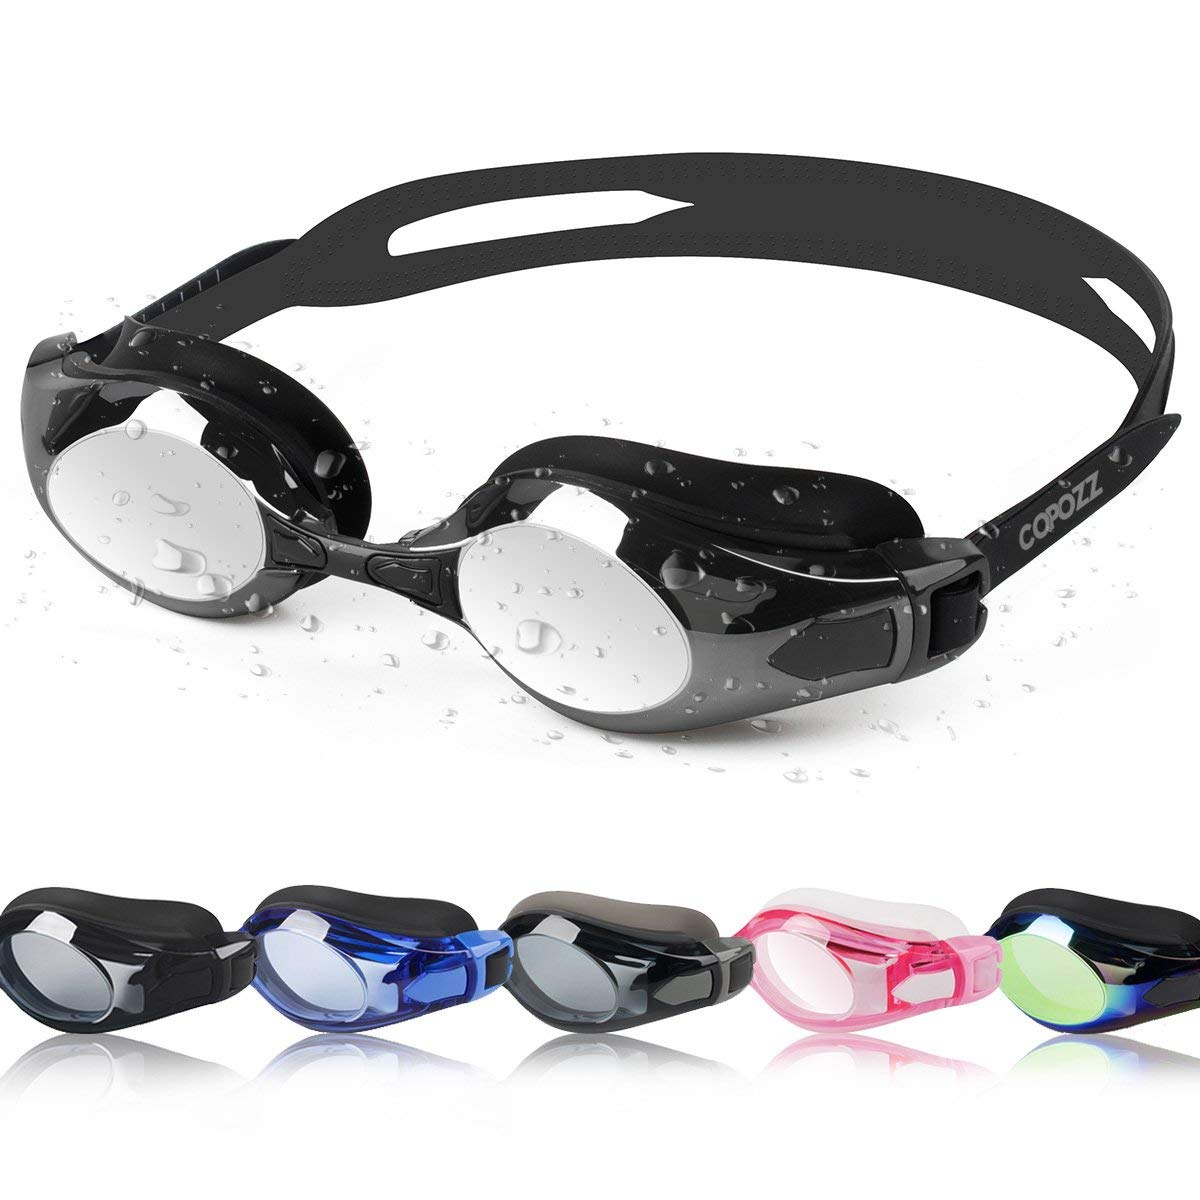 baef2e96ca4b Get Quotations · COPOZZ Swimming Goggles Double Anti Fog Swim Goggles  Mirrored Tinted Lens Crystal Clear Vision No